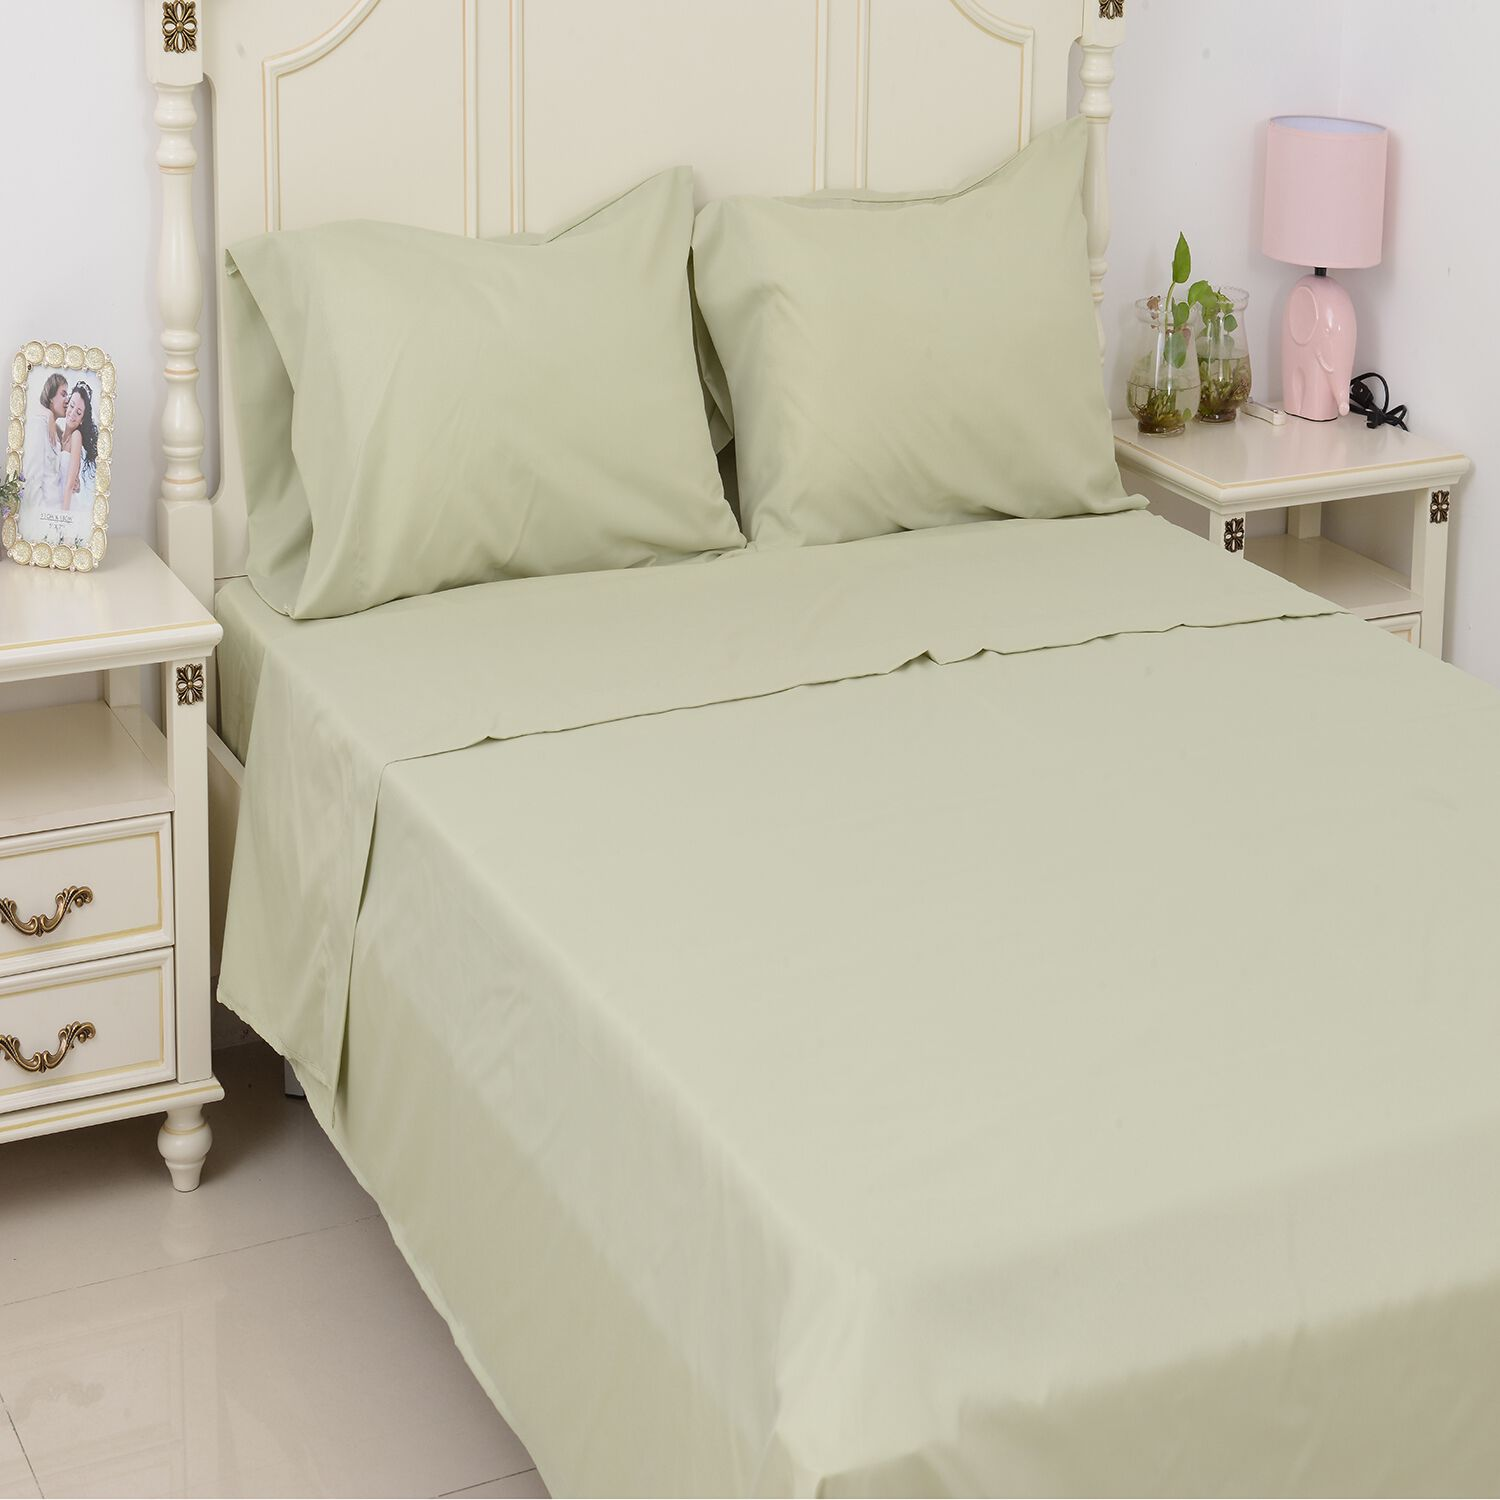 Solid Colour Bamboo Double Size 1 Fitted Sheet 1 Flat Sheet and 2 Pillow Covers Ivory TJC 4 Piece Set